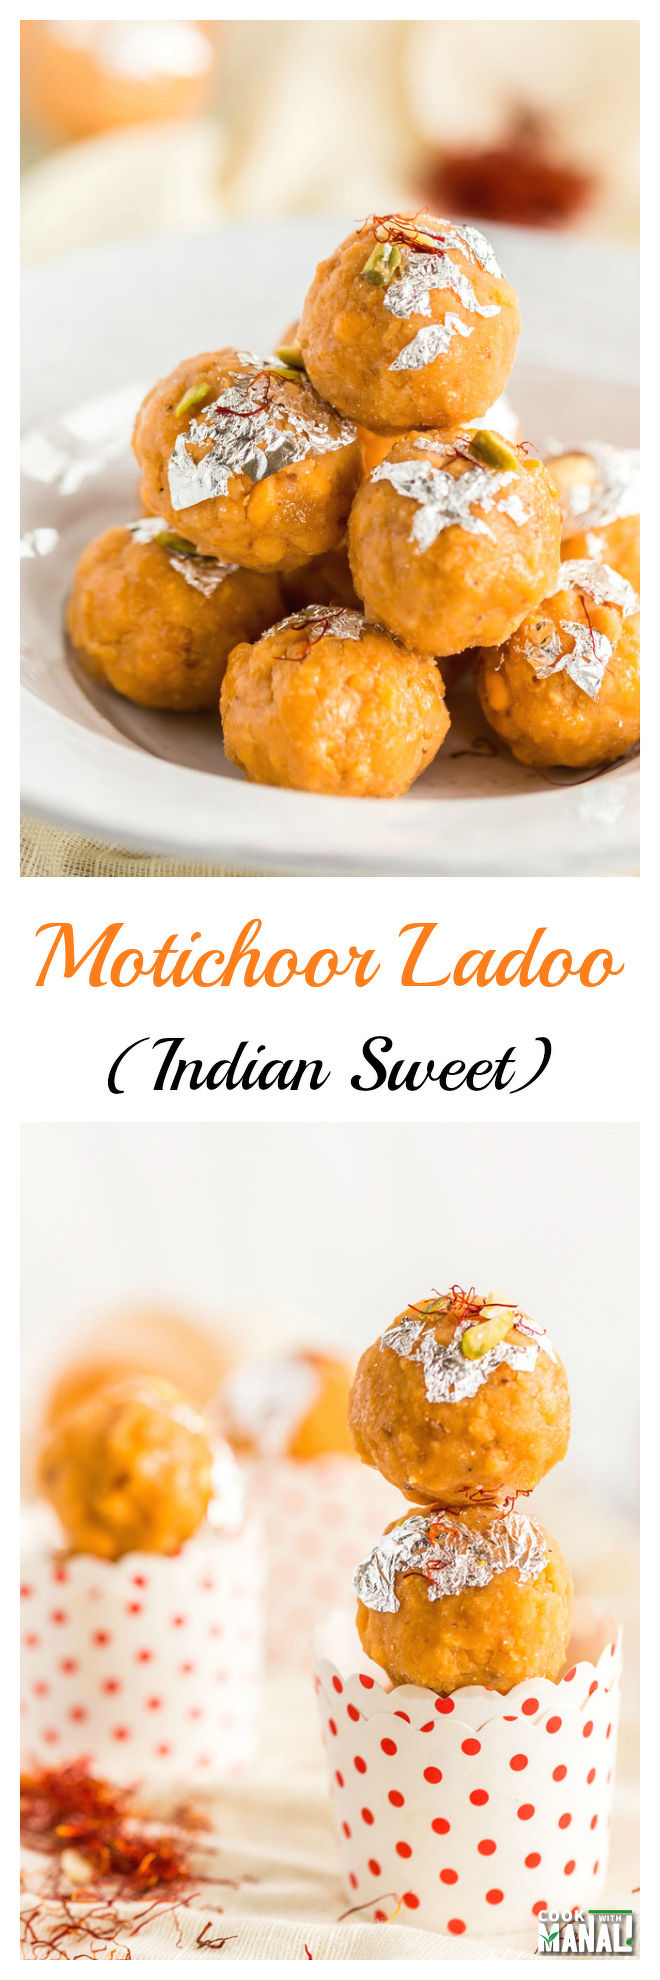 Motichoor Ladoo Collage